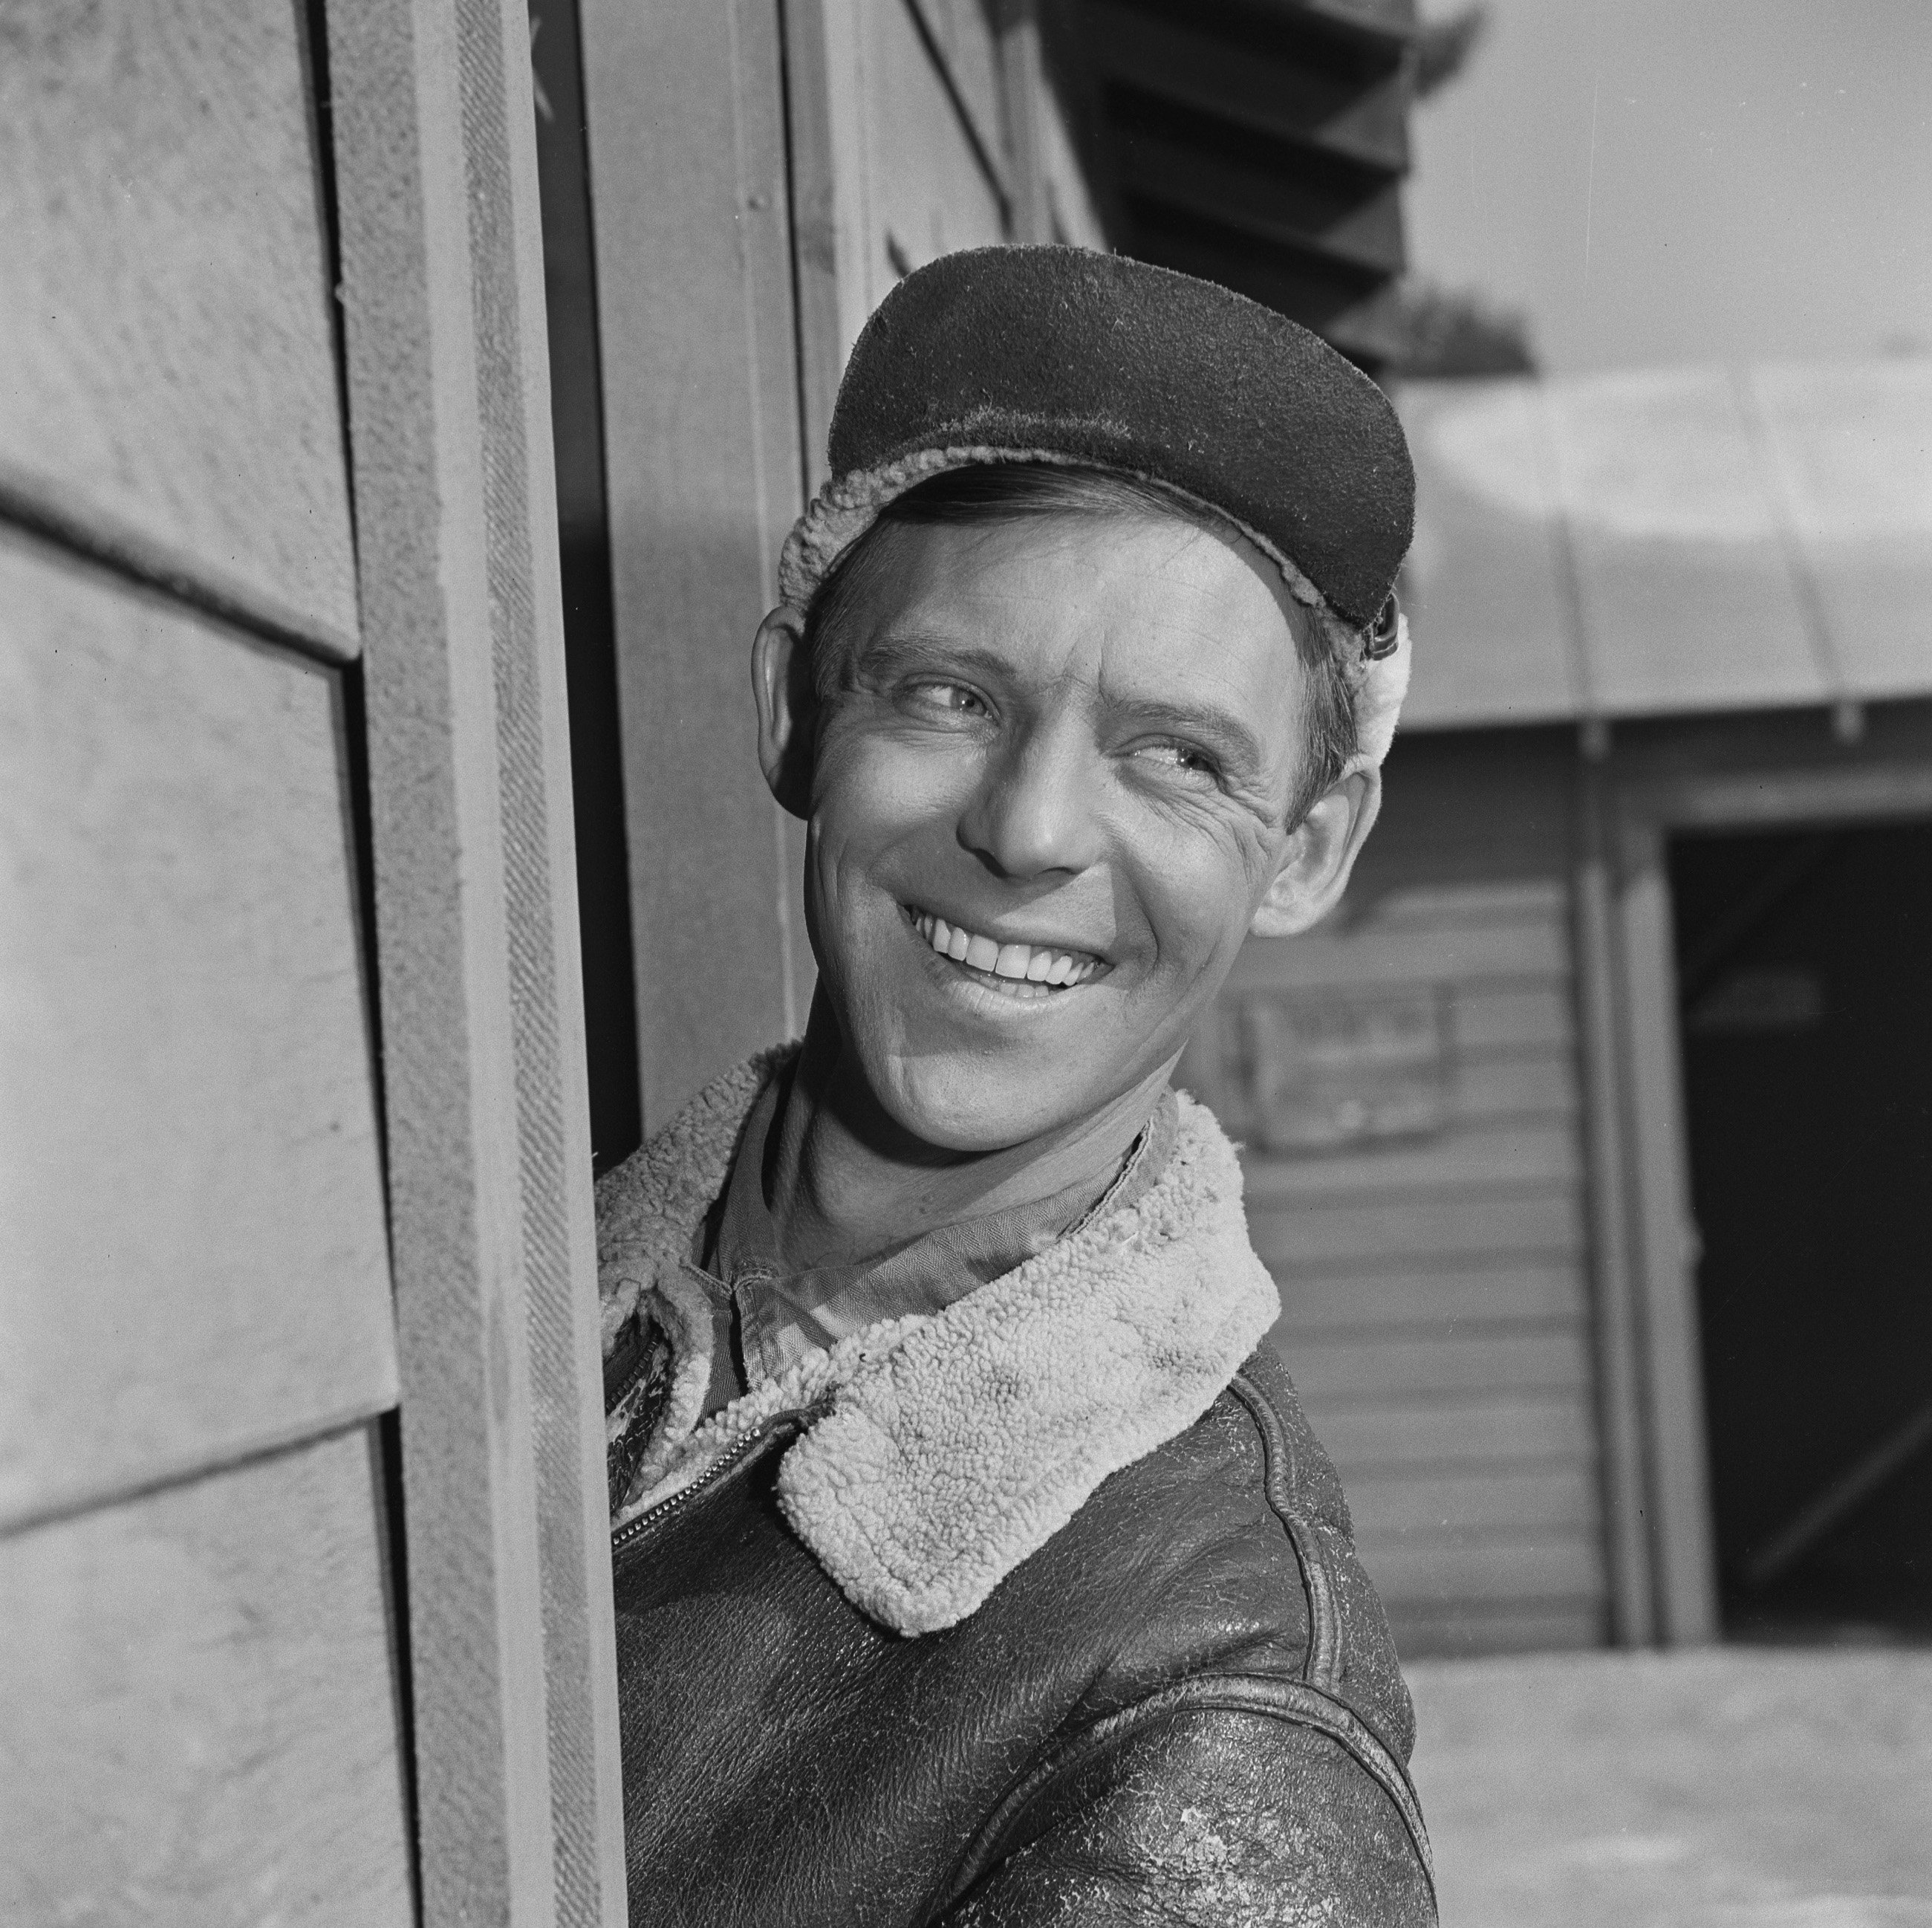 """Larry Hovis as Sgt. Andrew Carter in an episode from CBS' comedy television series, """"Hogan's Heroes"""", October 19, 1965. 